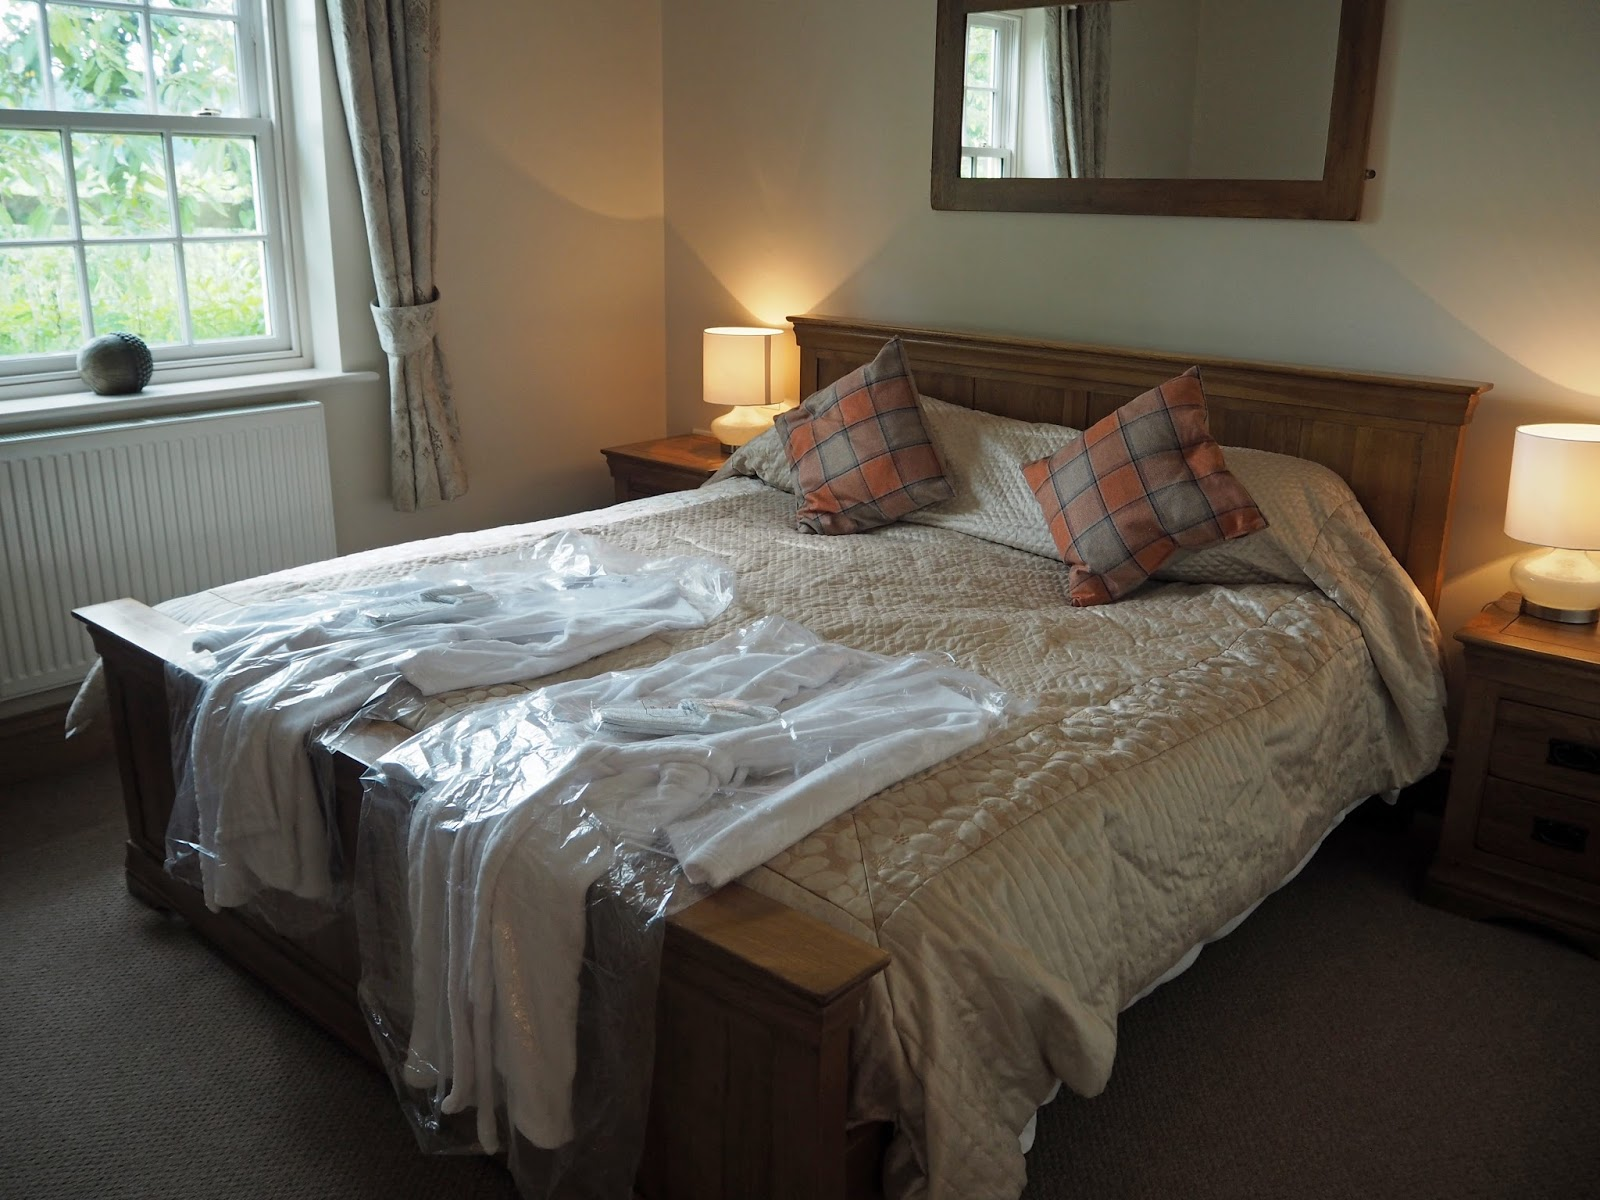 Bedroom Ox Pasture Hall Country Hotel, Scarborough, Yorkshire, romantic hotel near beach in Scarborough